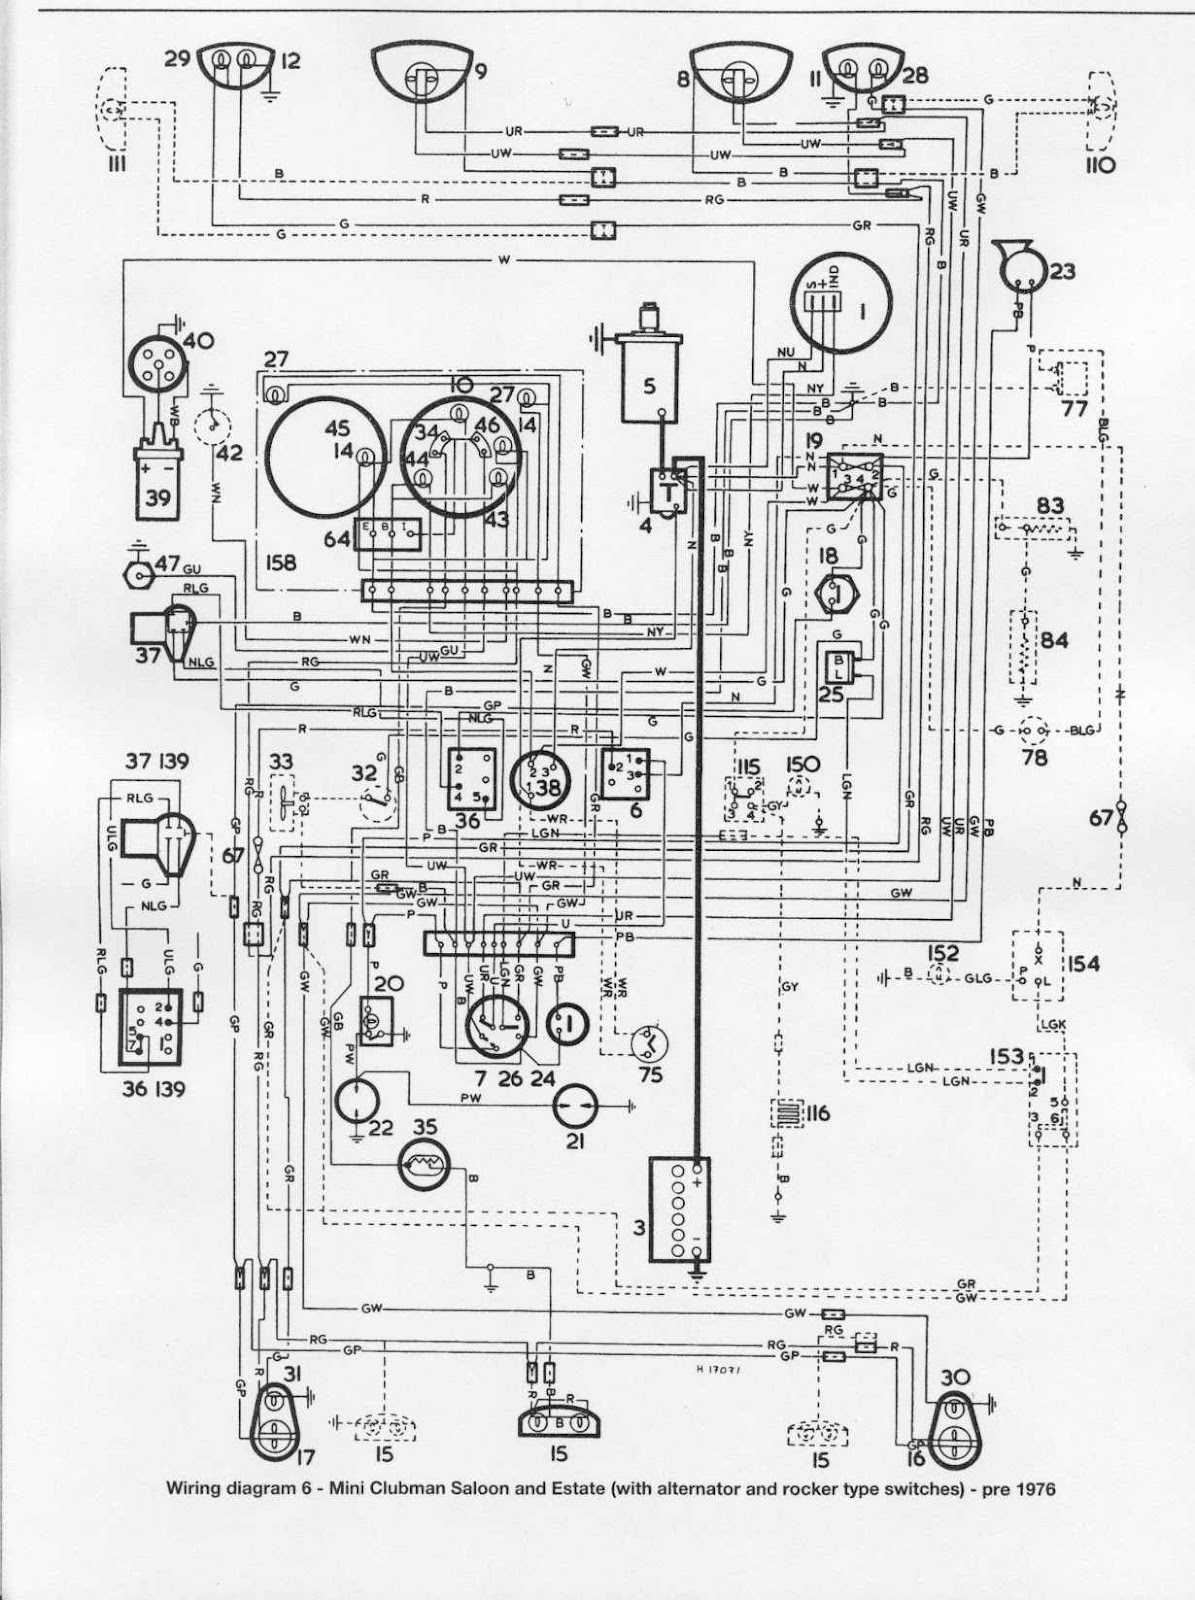 austin mini wiring diagram simple wiring schema rh 44 aspire atlantis de home lighting circuit diagram basic electrical circuit wiring diagram [ 1195 x 1600 Pixel ]